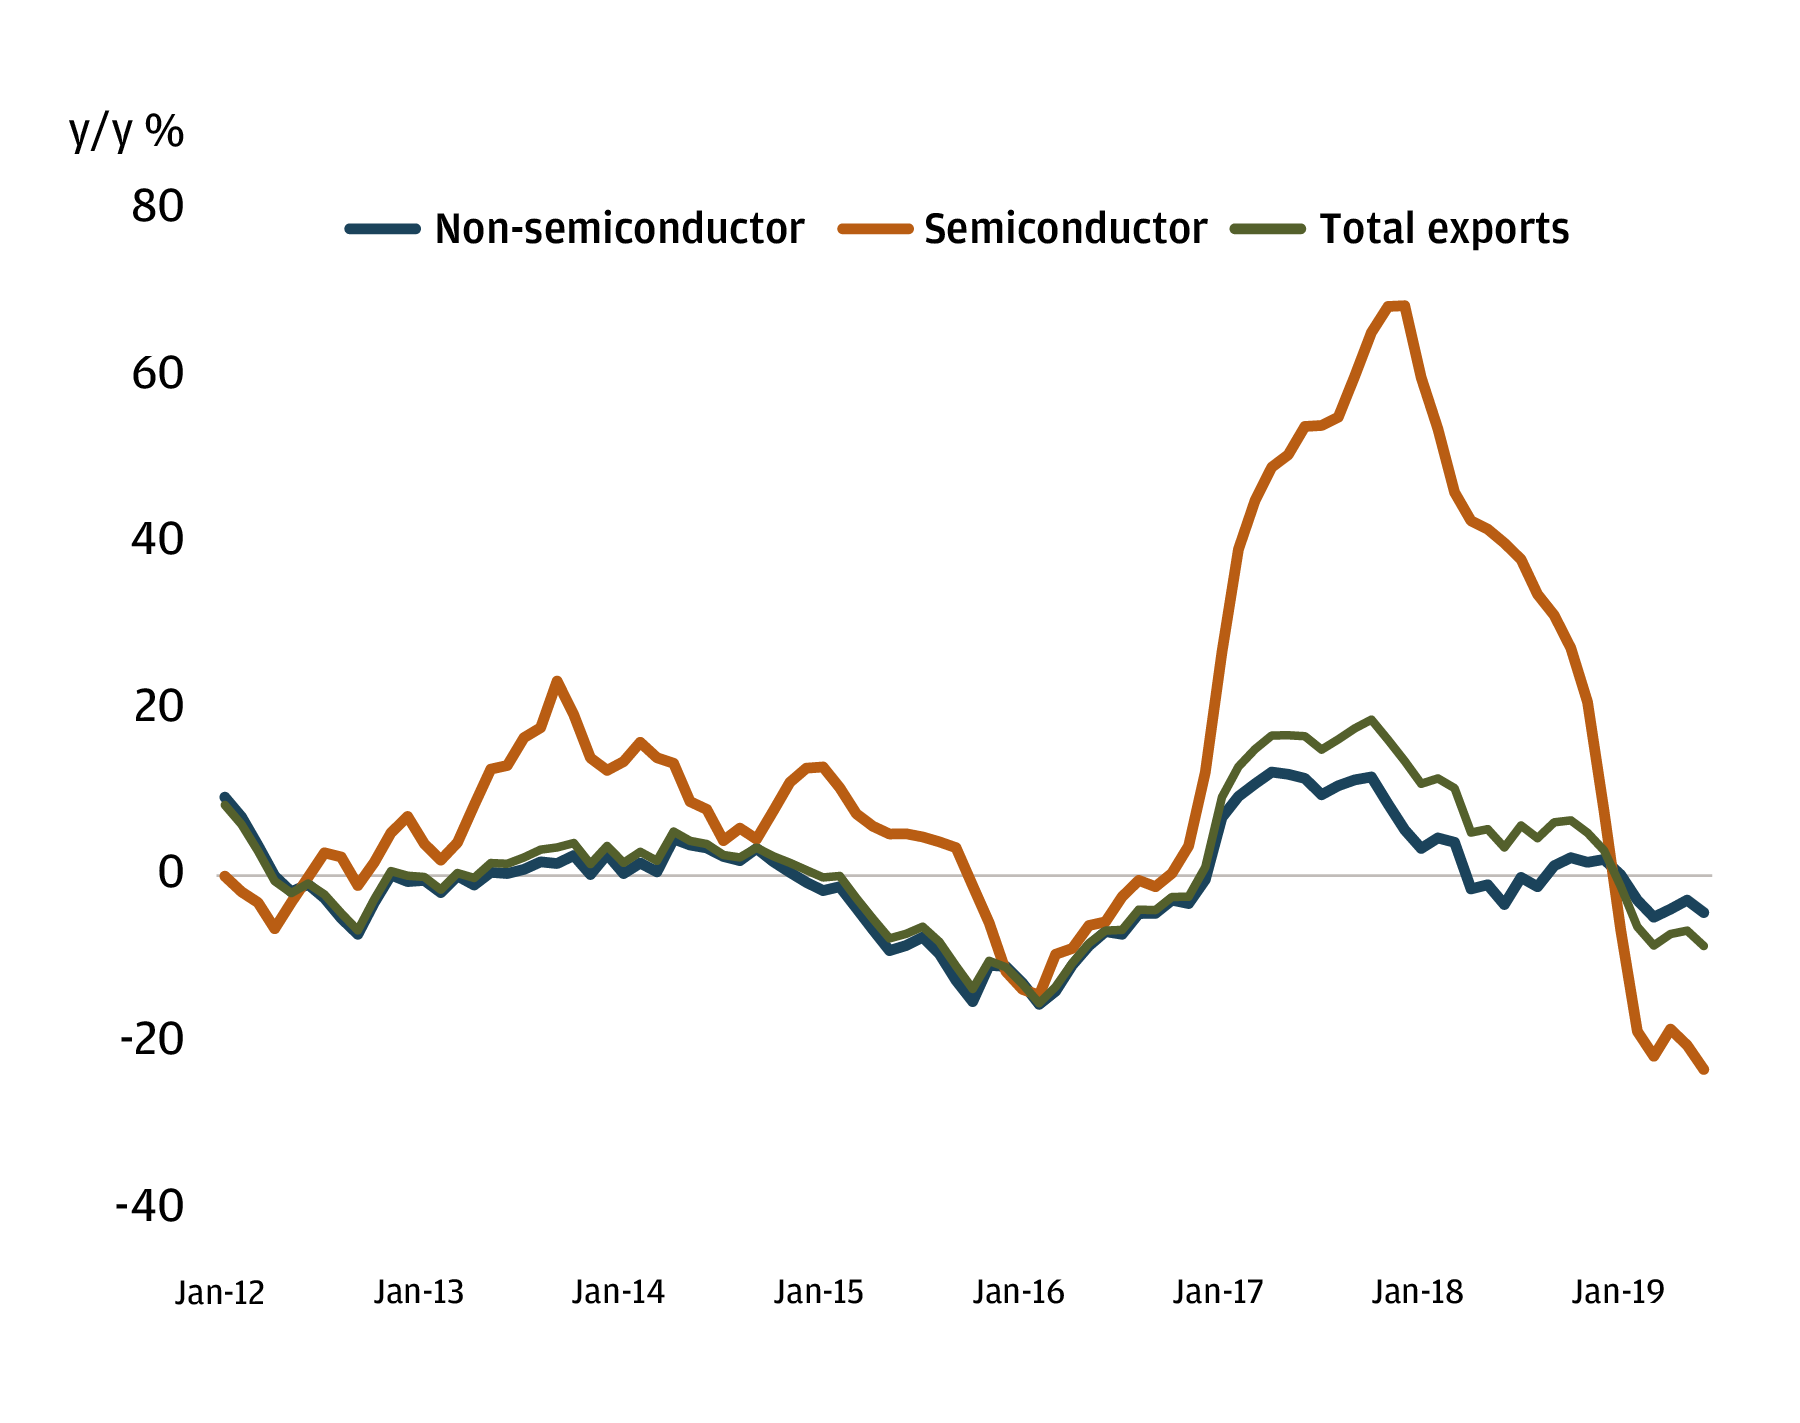 Exhibit 2: Exports in semiconductors have dropped dramatically in Korea